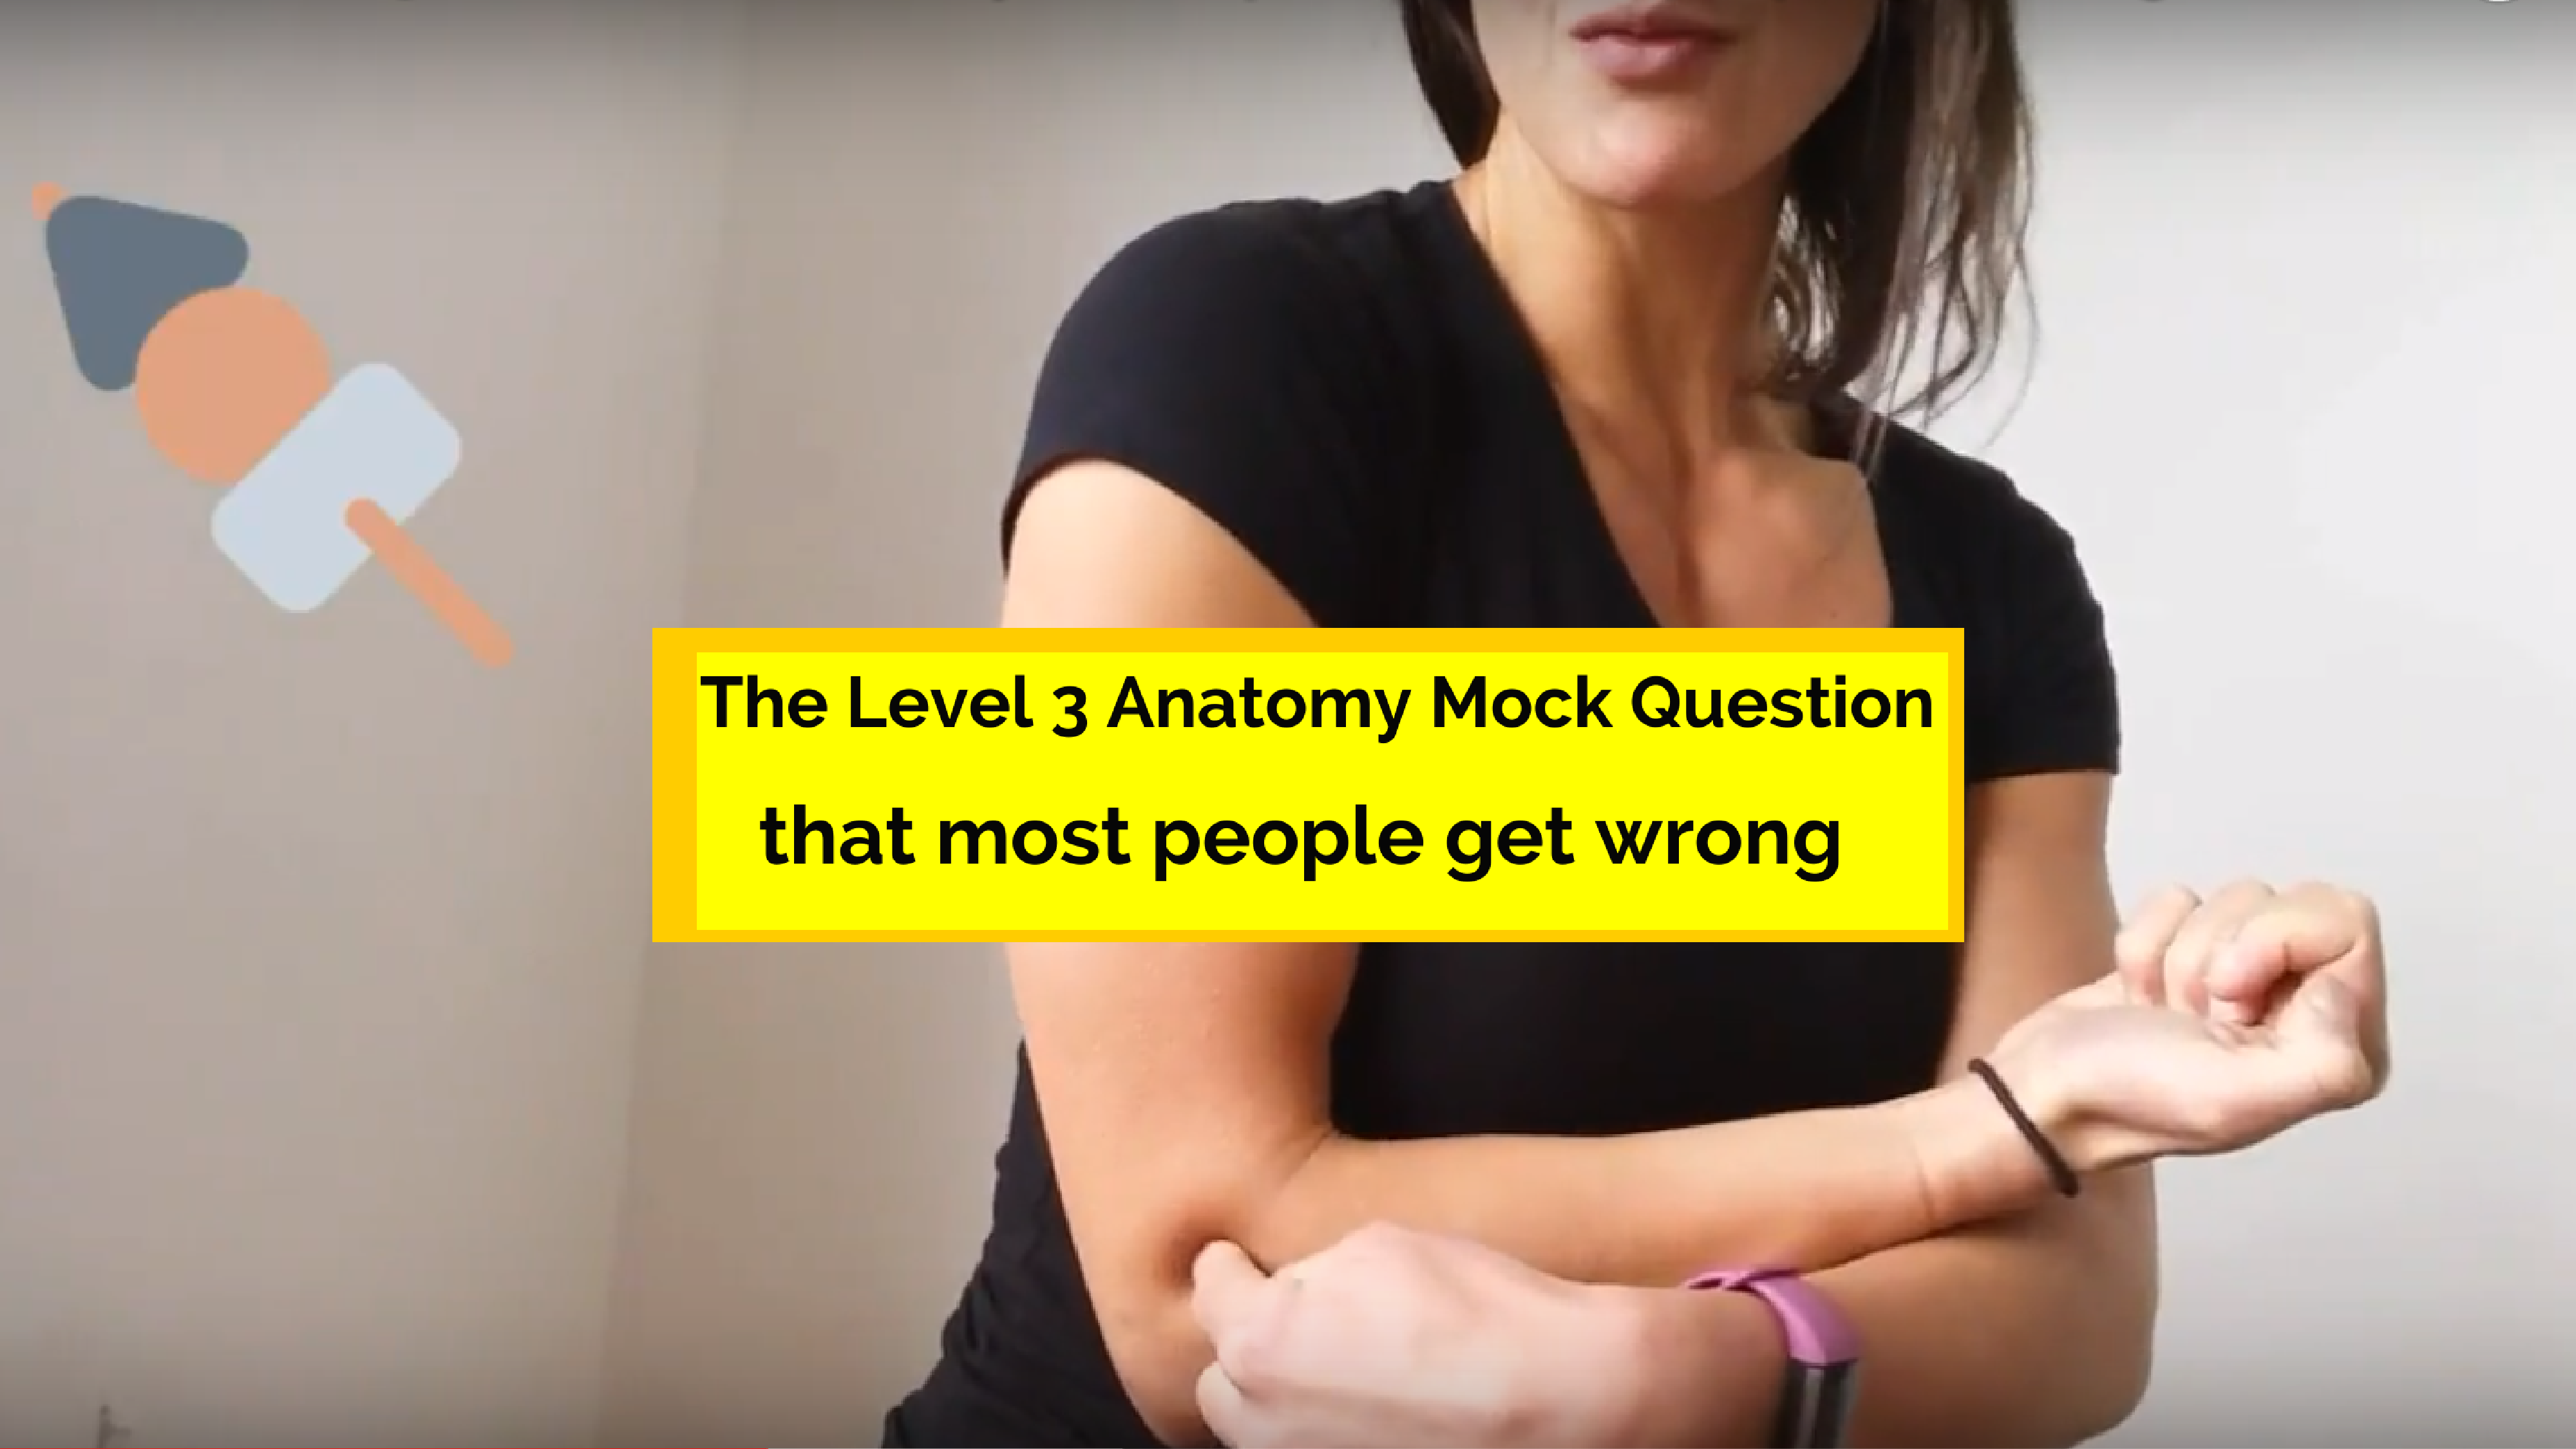 The level 3 anatomy mock question most people get wrong [Axis of Movement]